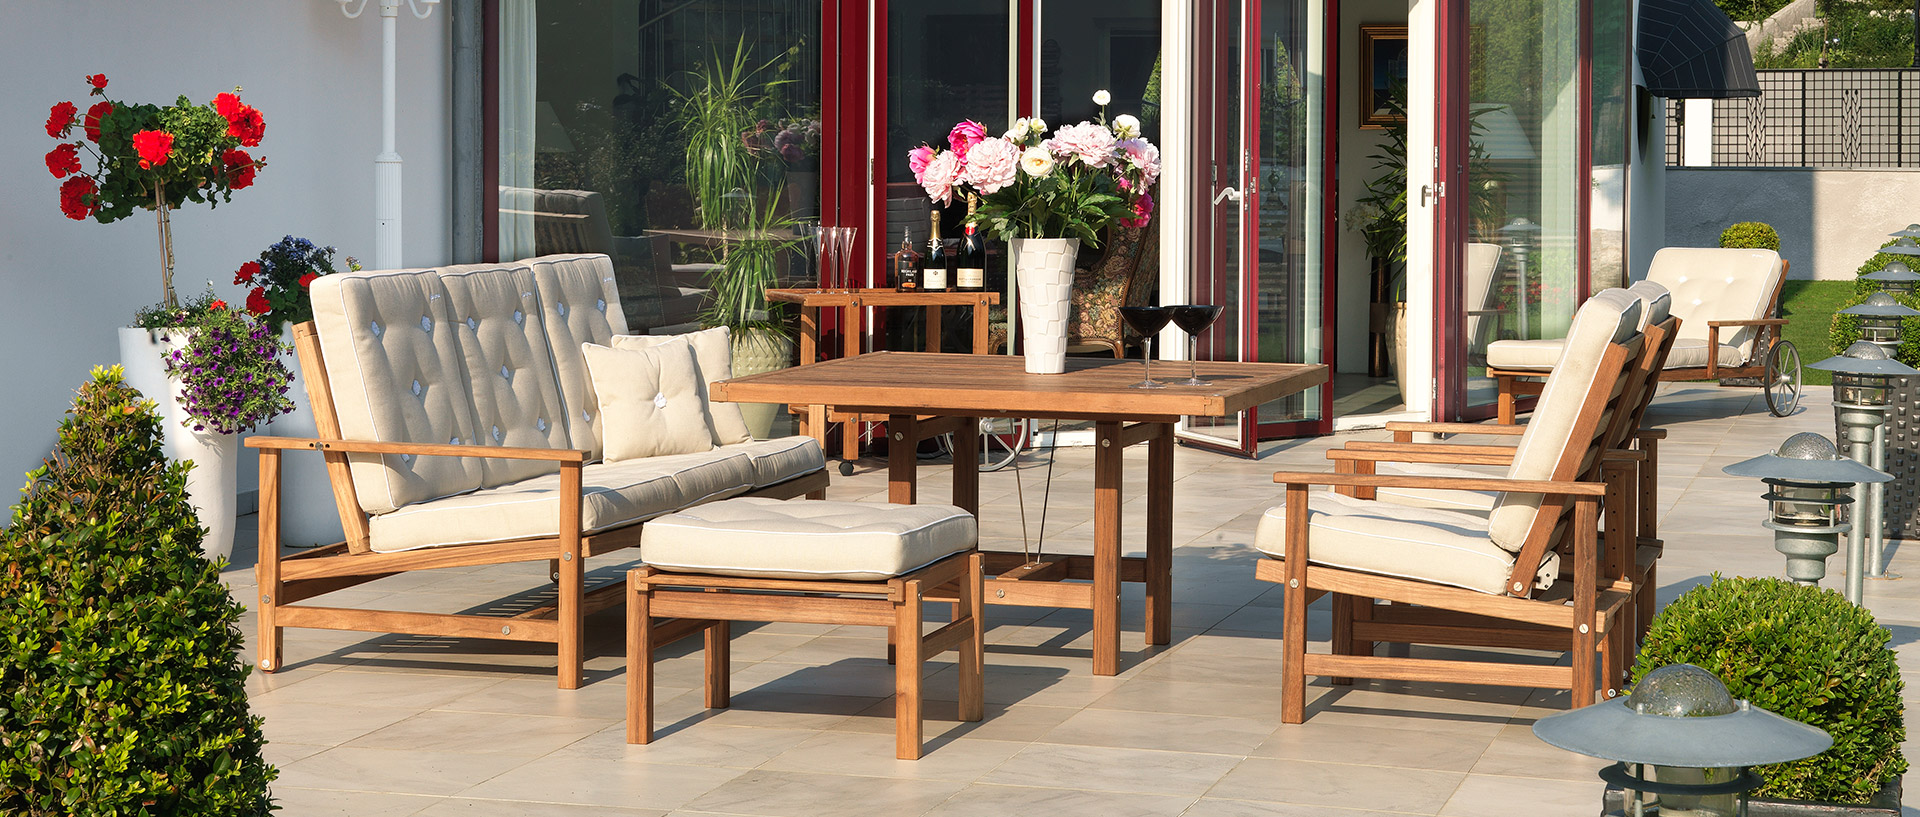 Axel Classic Lounge Area Collection Couture Outdoor